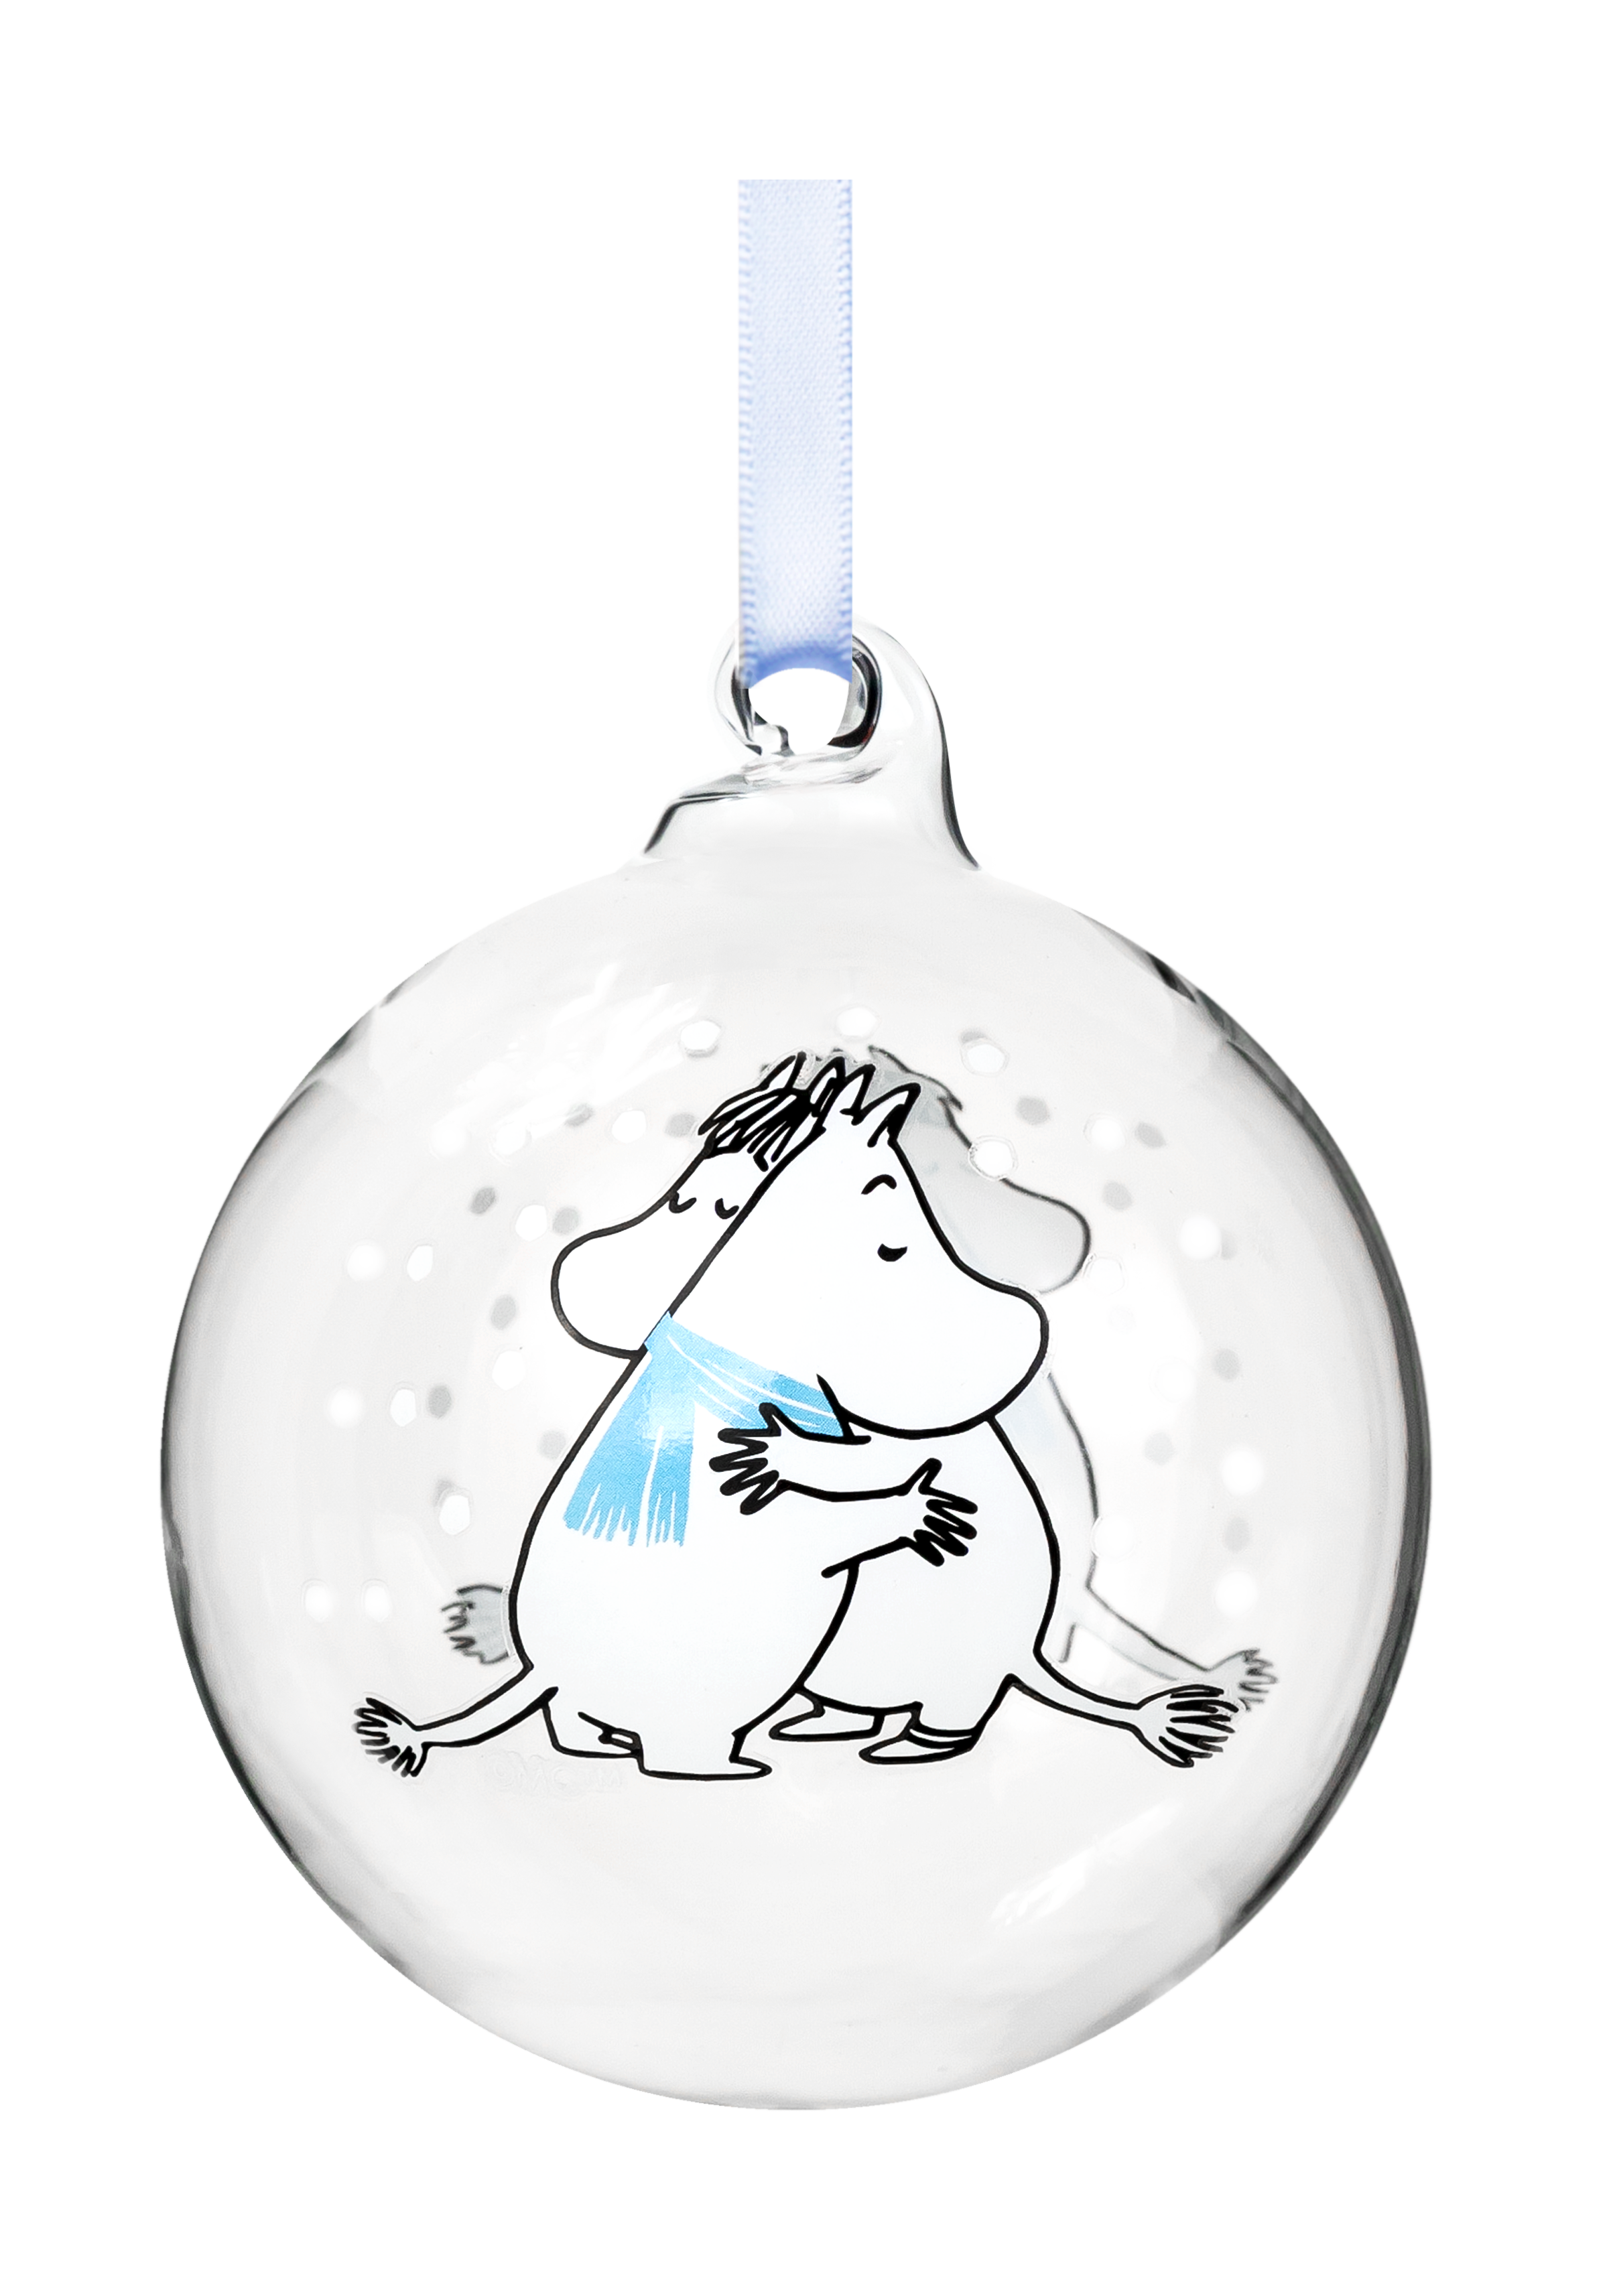 Moomin by Muurla - Cuddle decoration ball 7cm